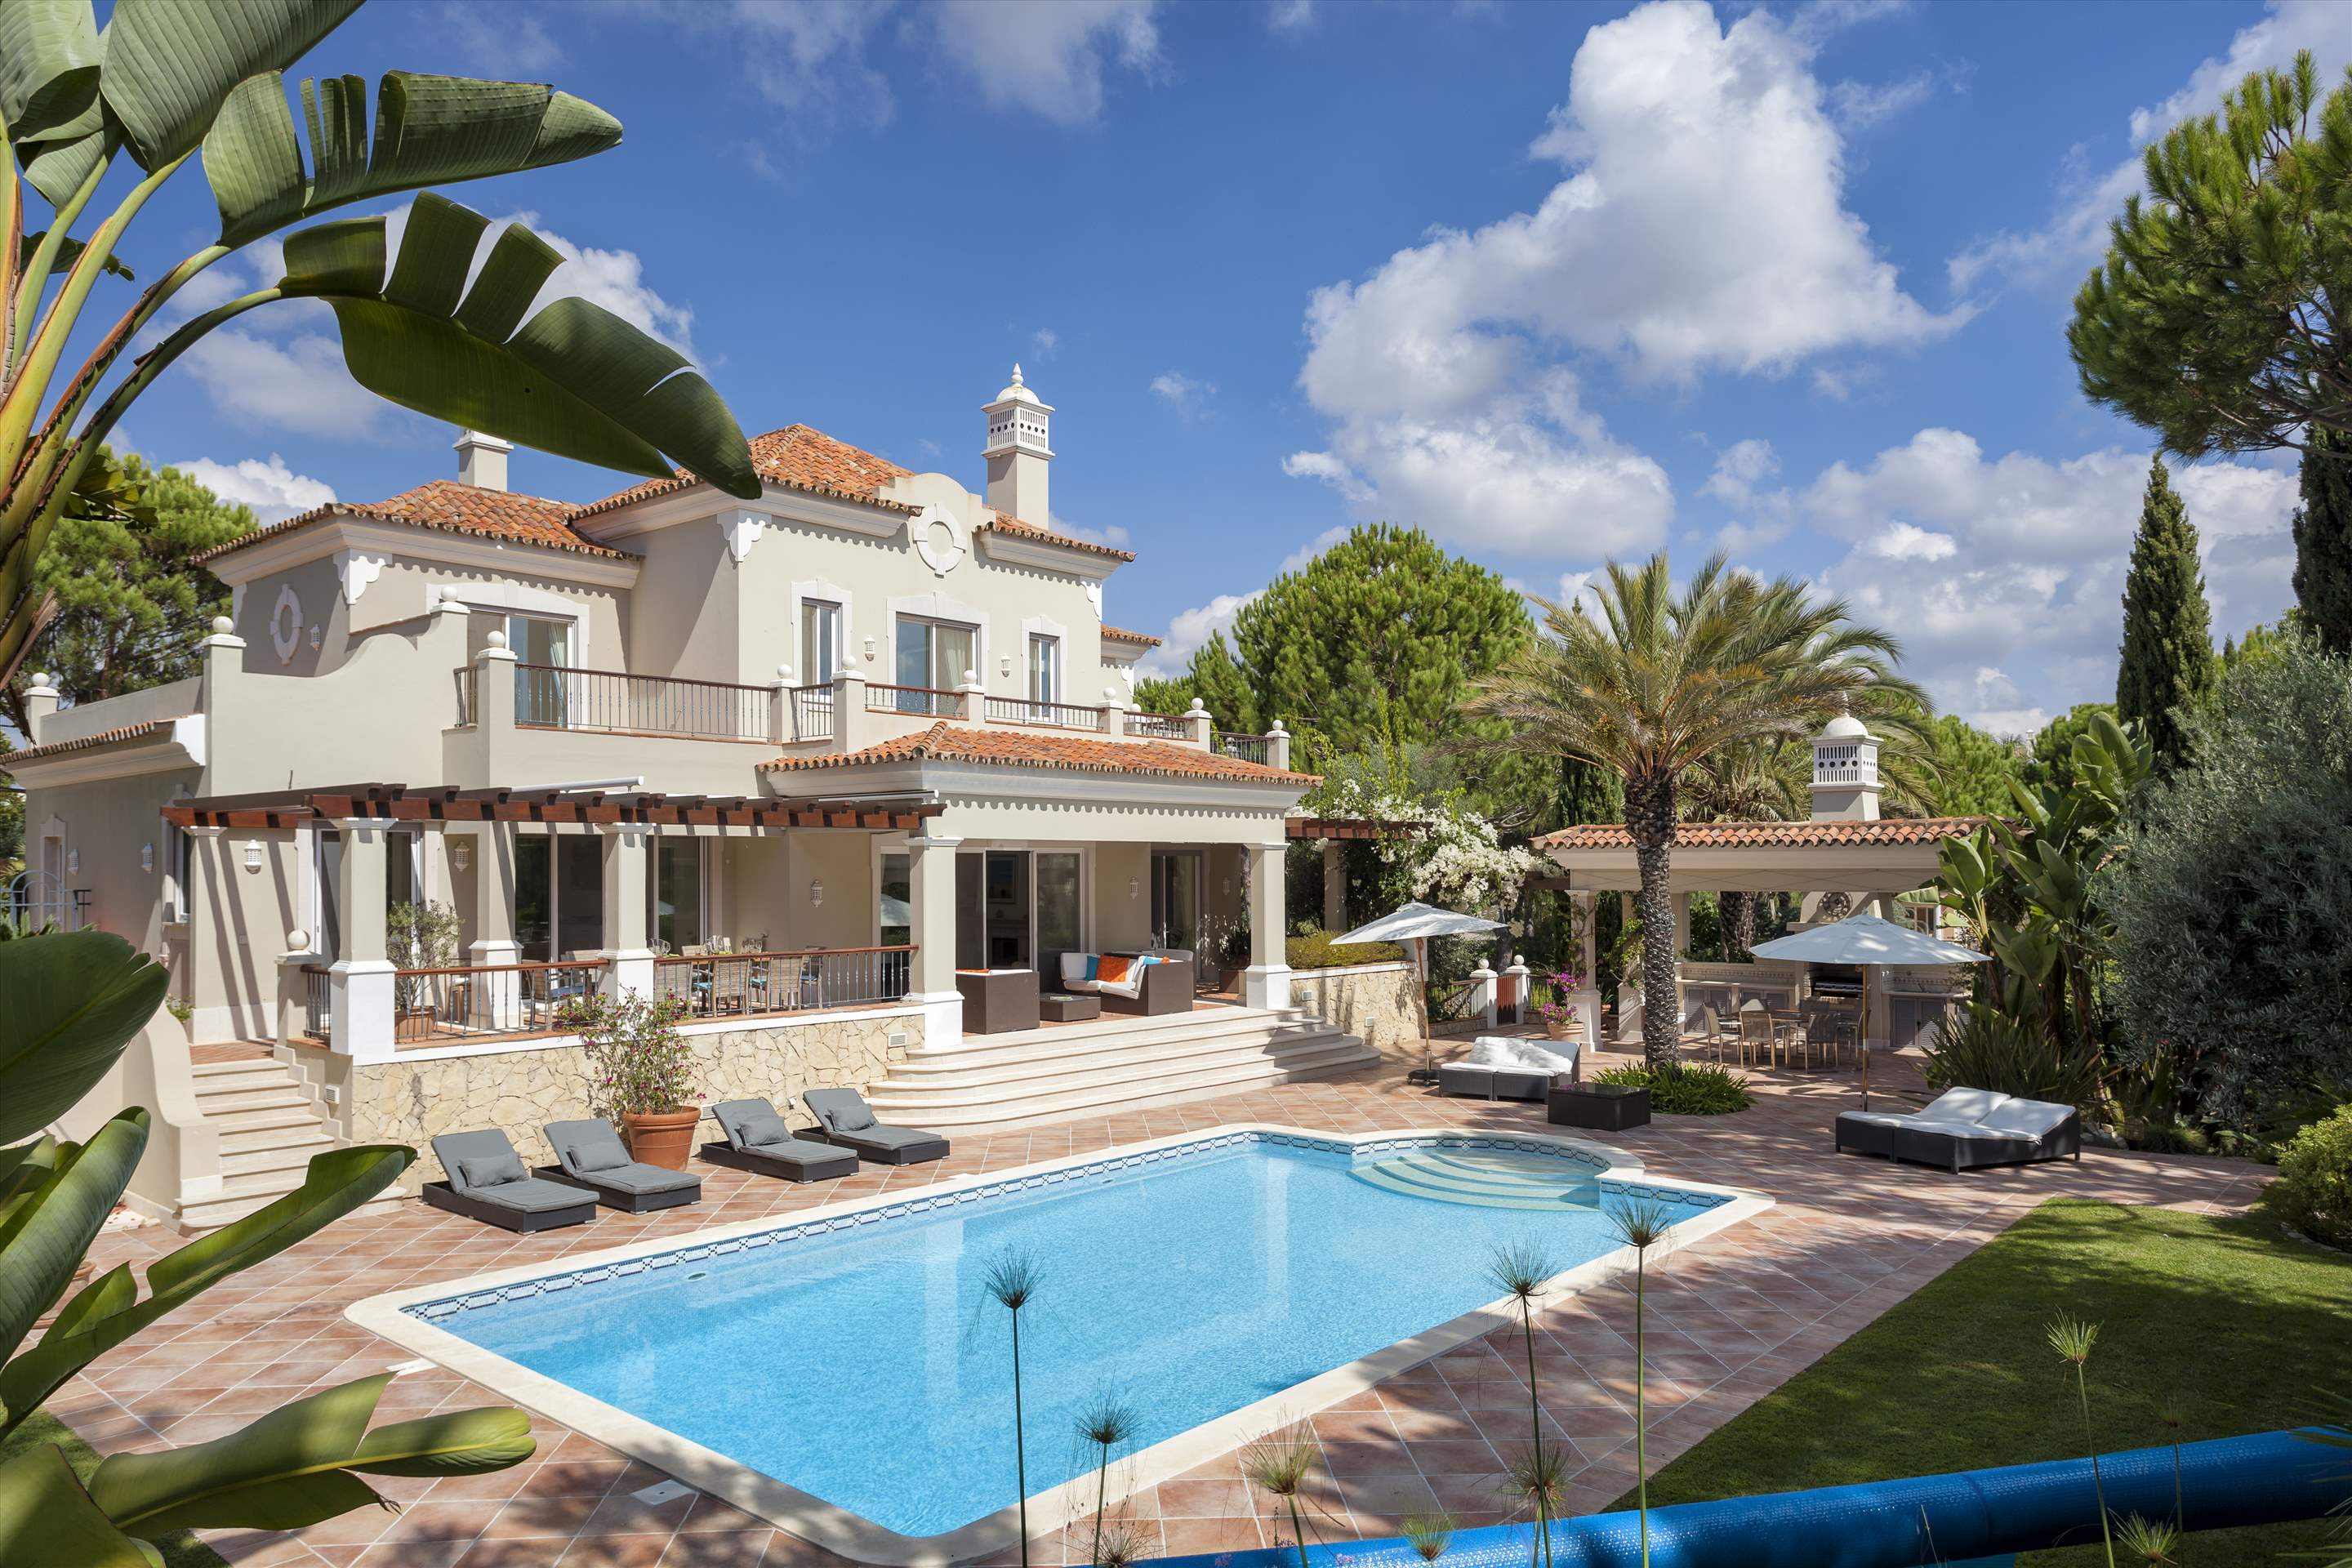 Villa Campainha, 4 Bedroom Rental, 4 bedroom villa in Quinta do Lago, Algarve